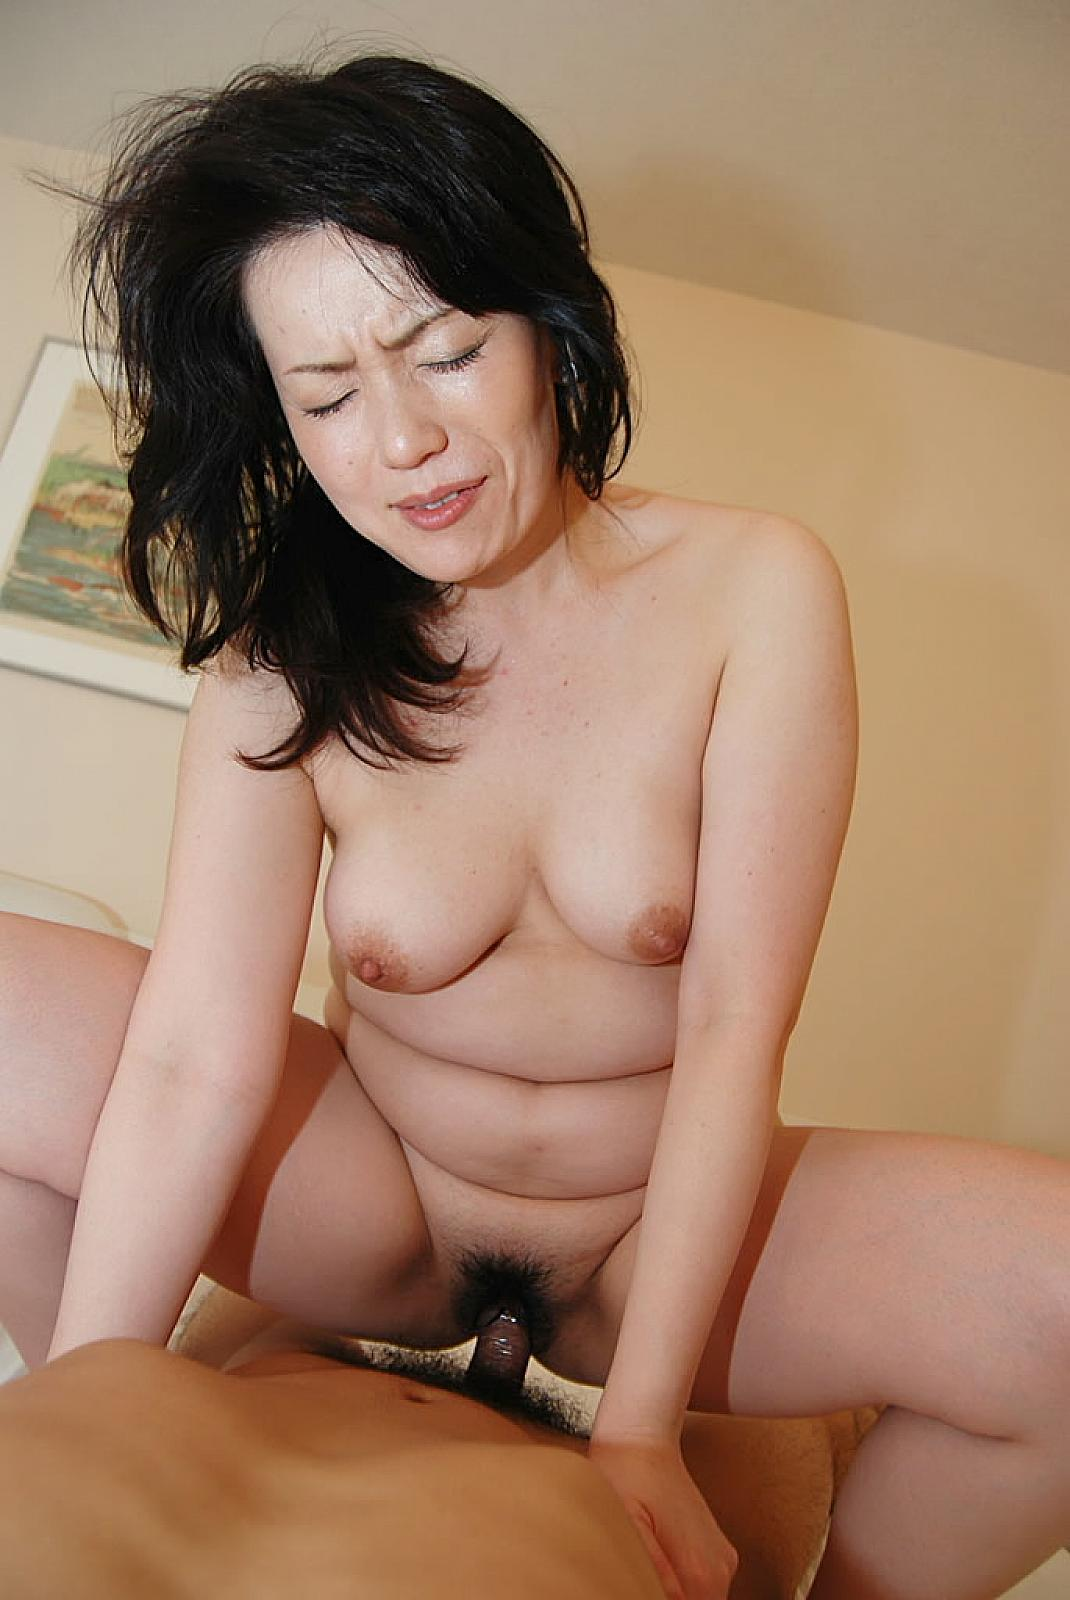 Well, not Ancient asian granny video porno site